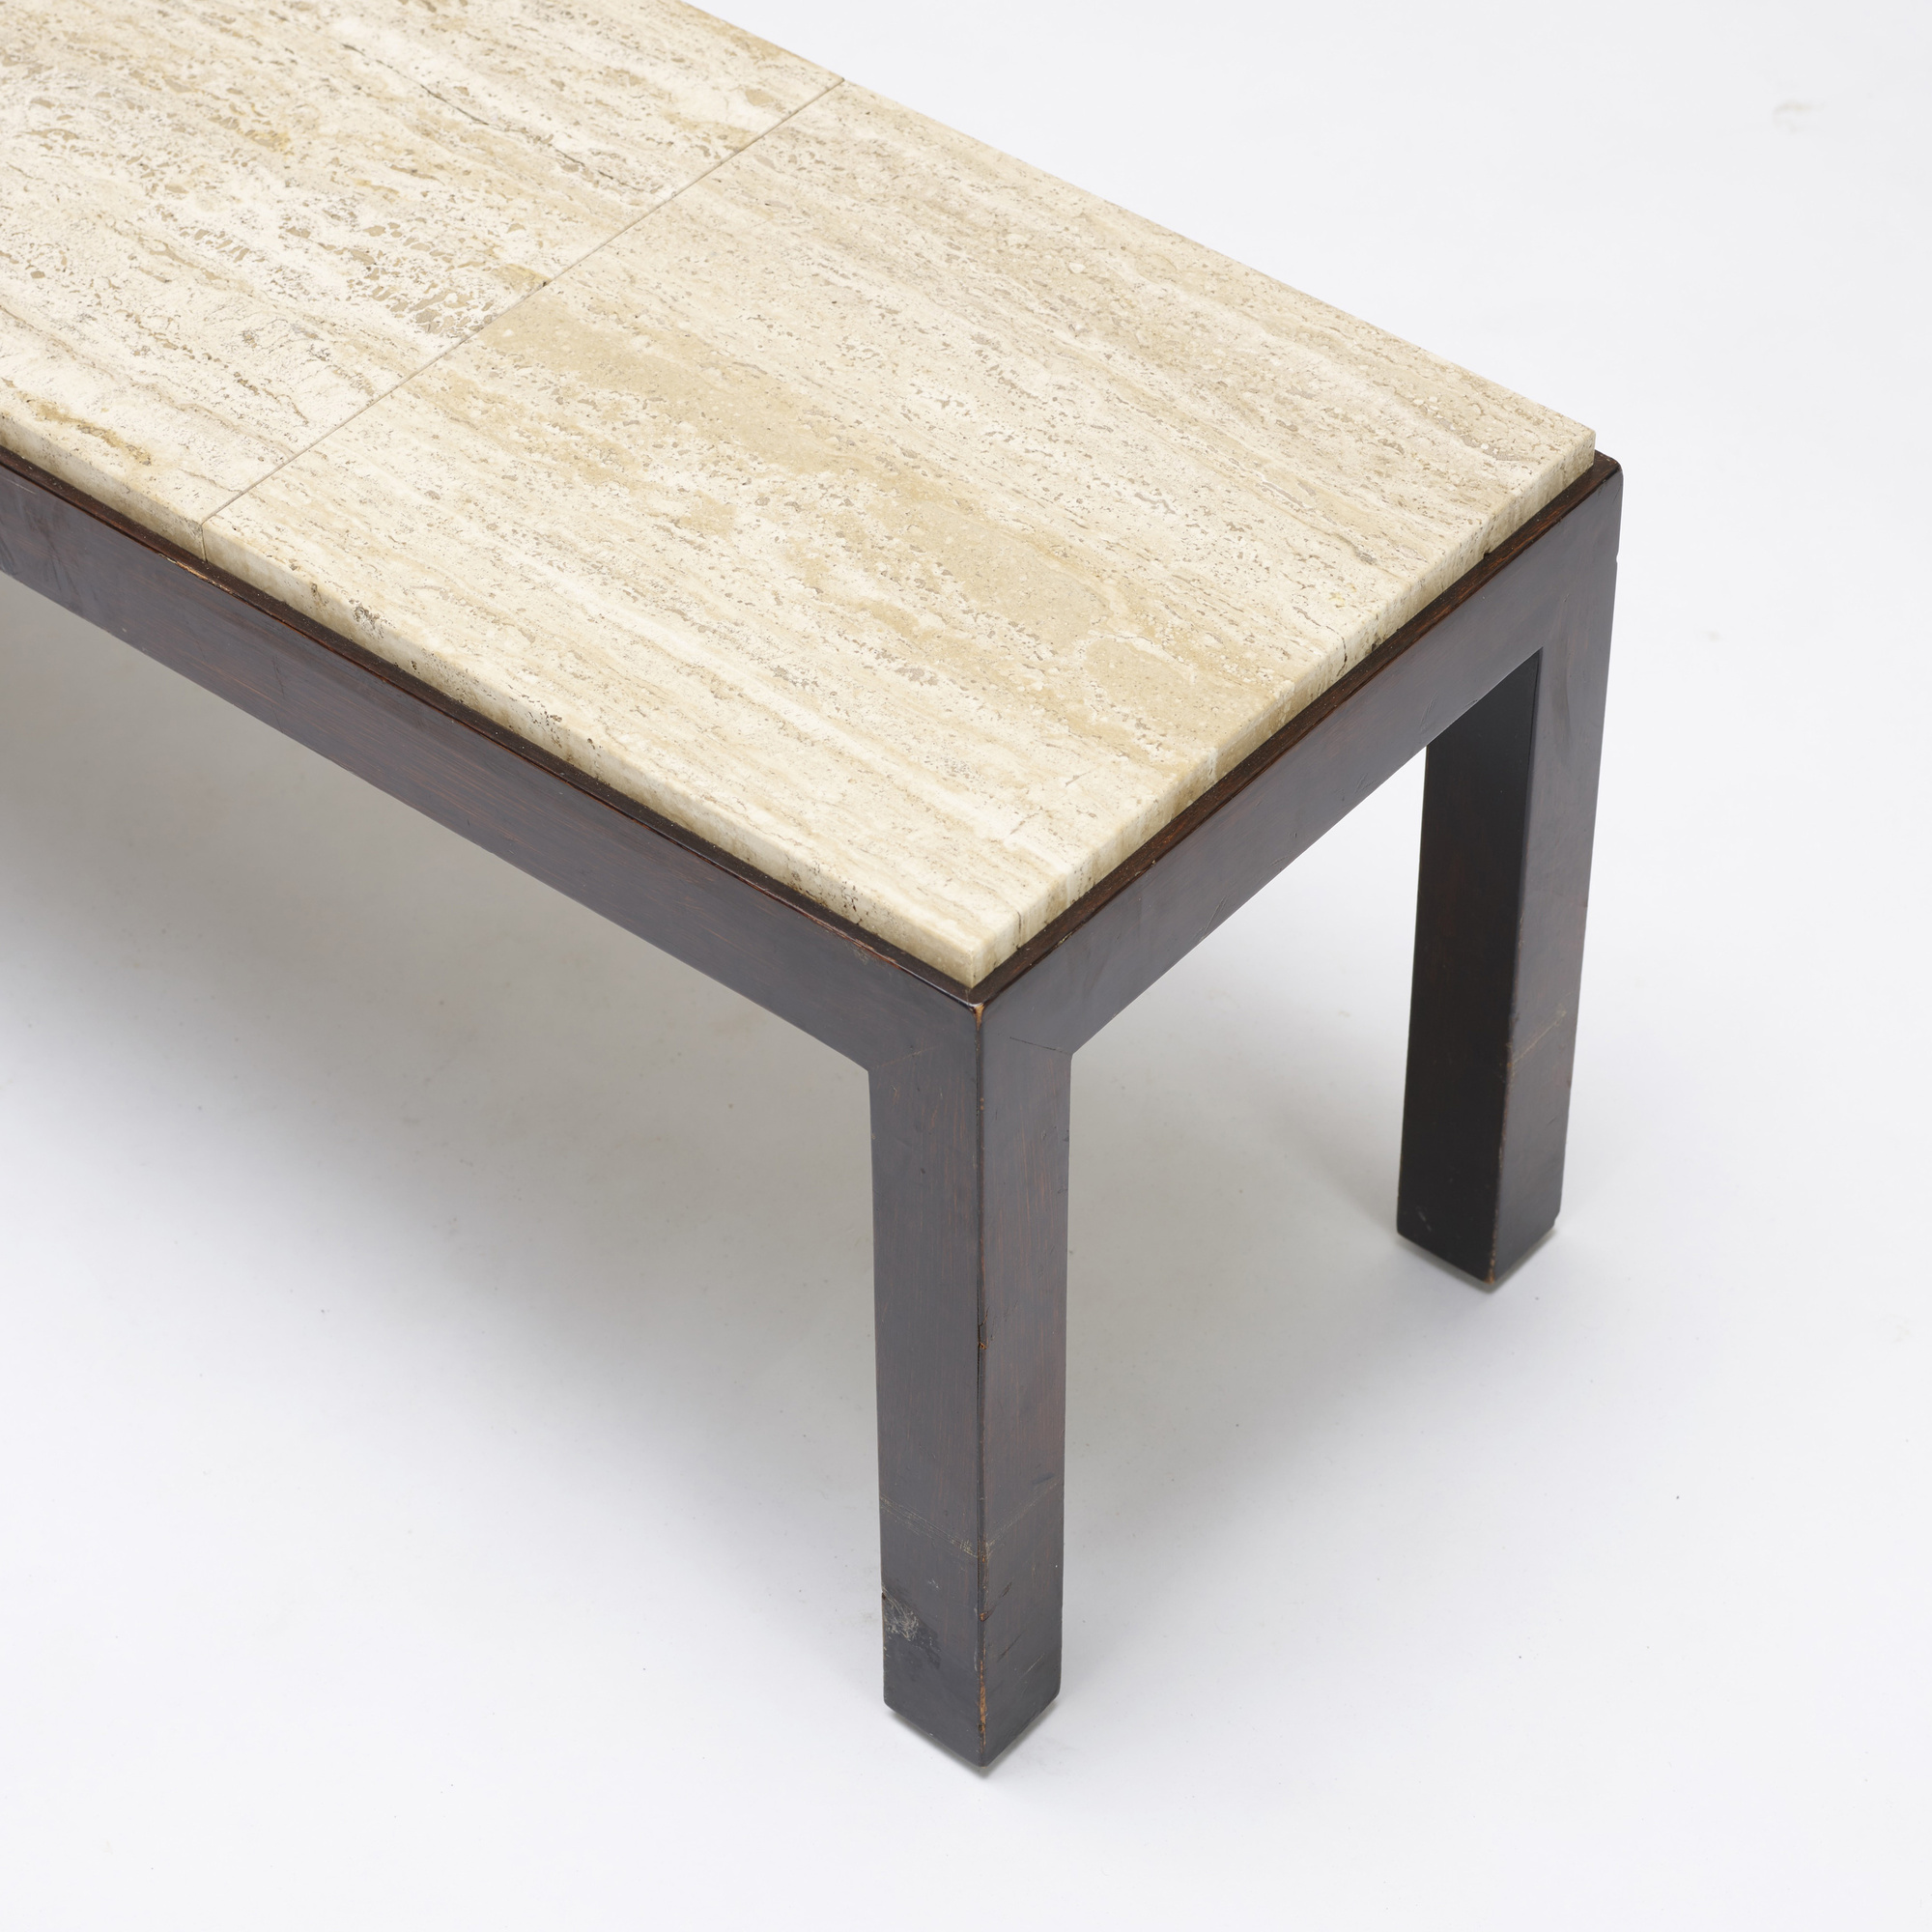 802: Edward Wormley / coffee table (2 of 2)